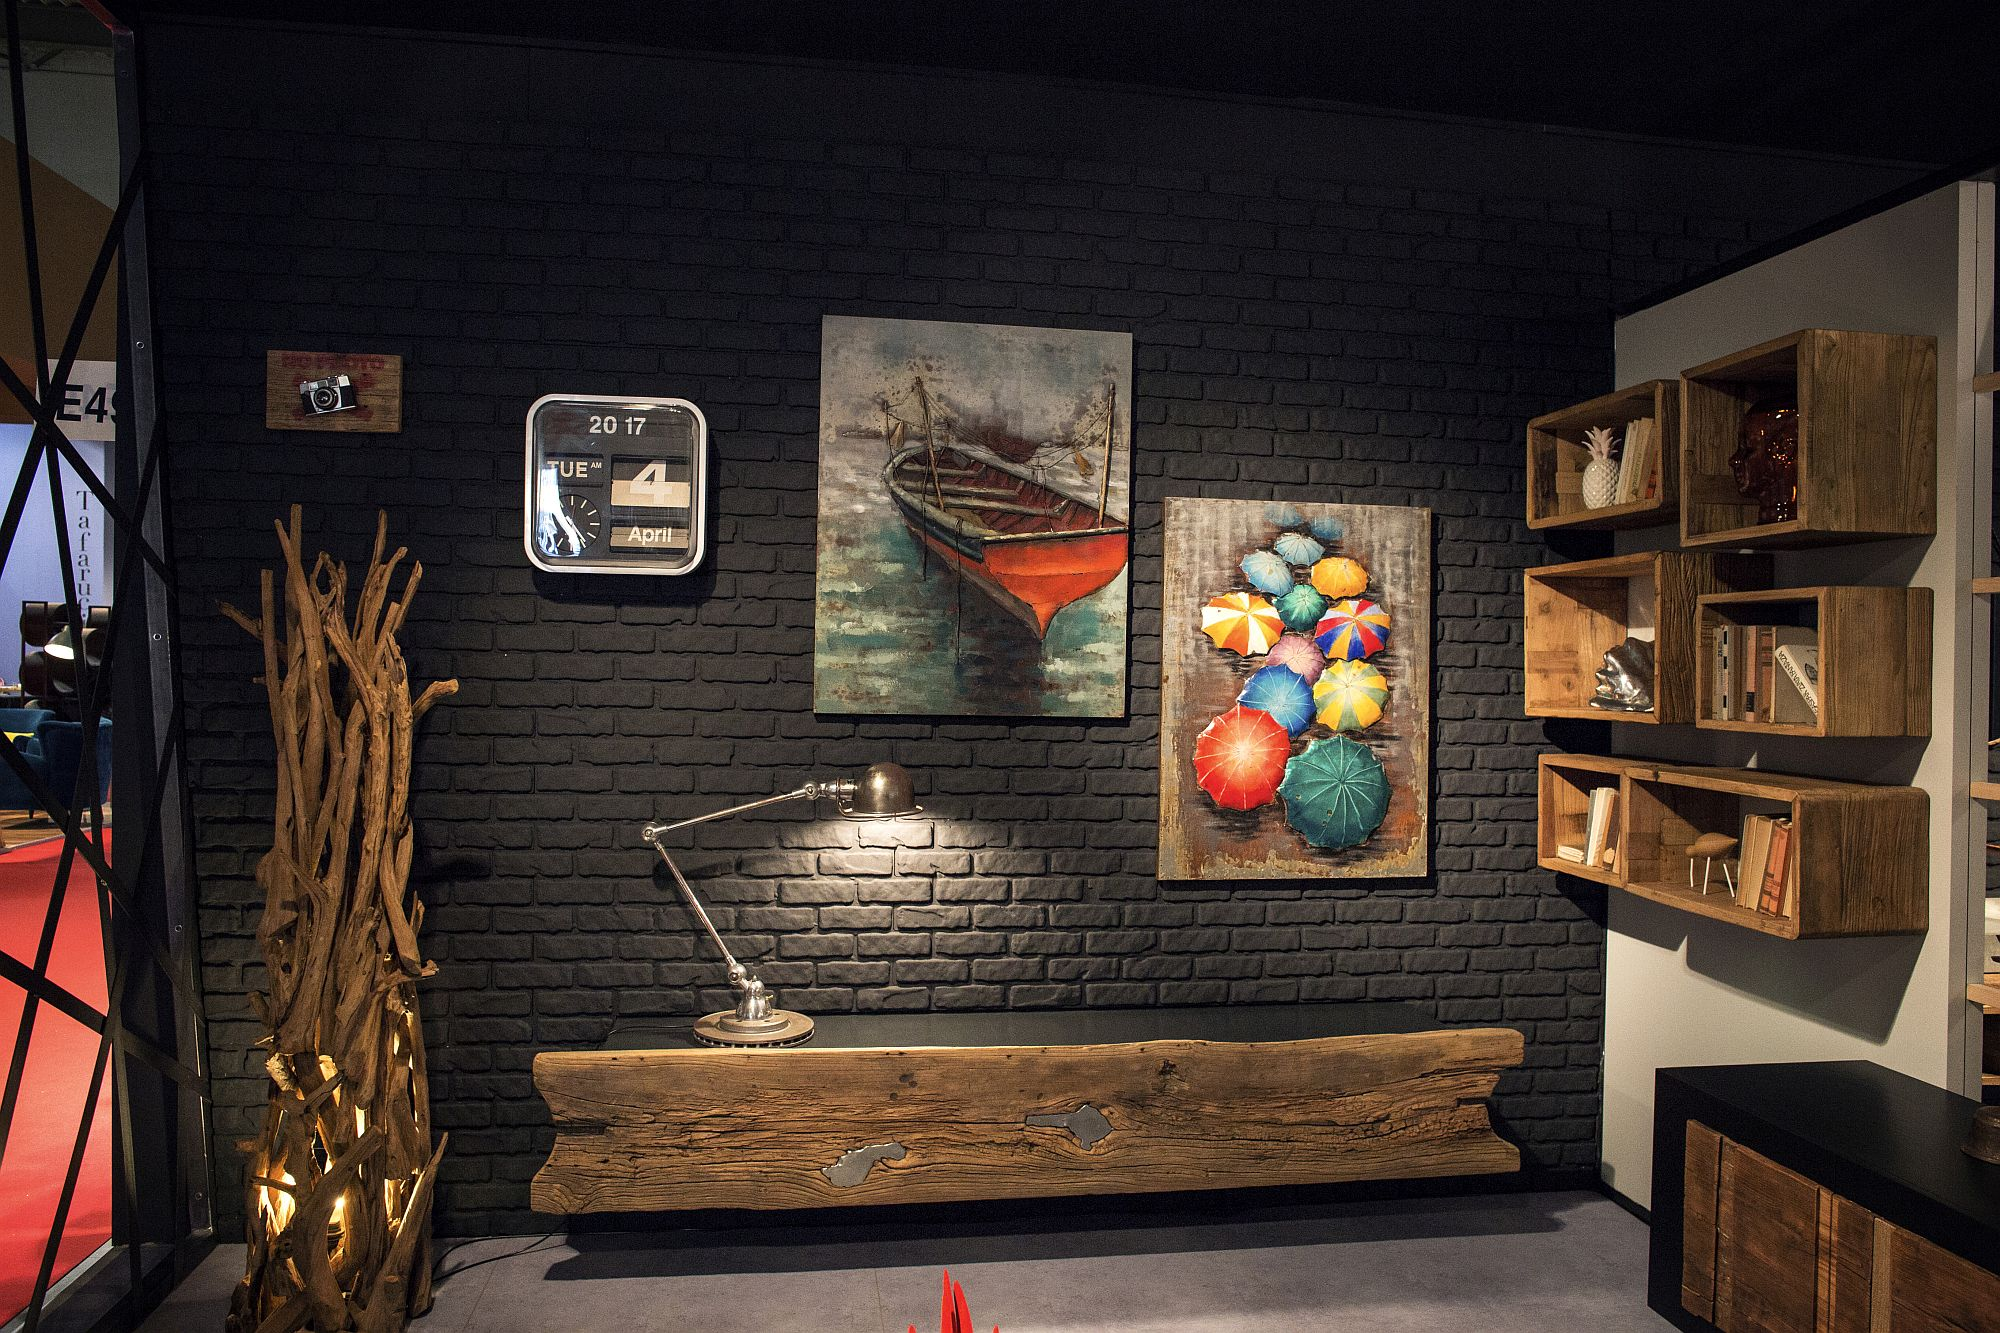 New-age-wooden-decor-with-beautiful-textural-finish-from-Gwinner